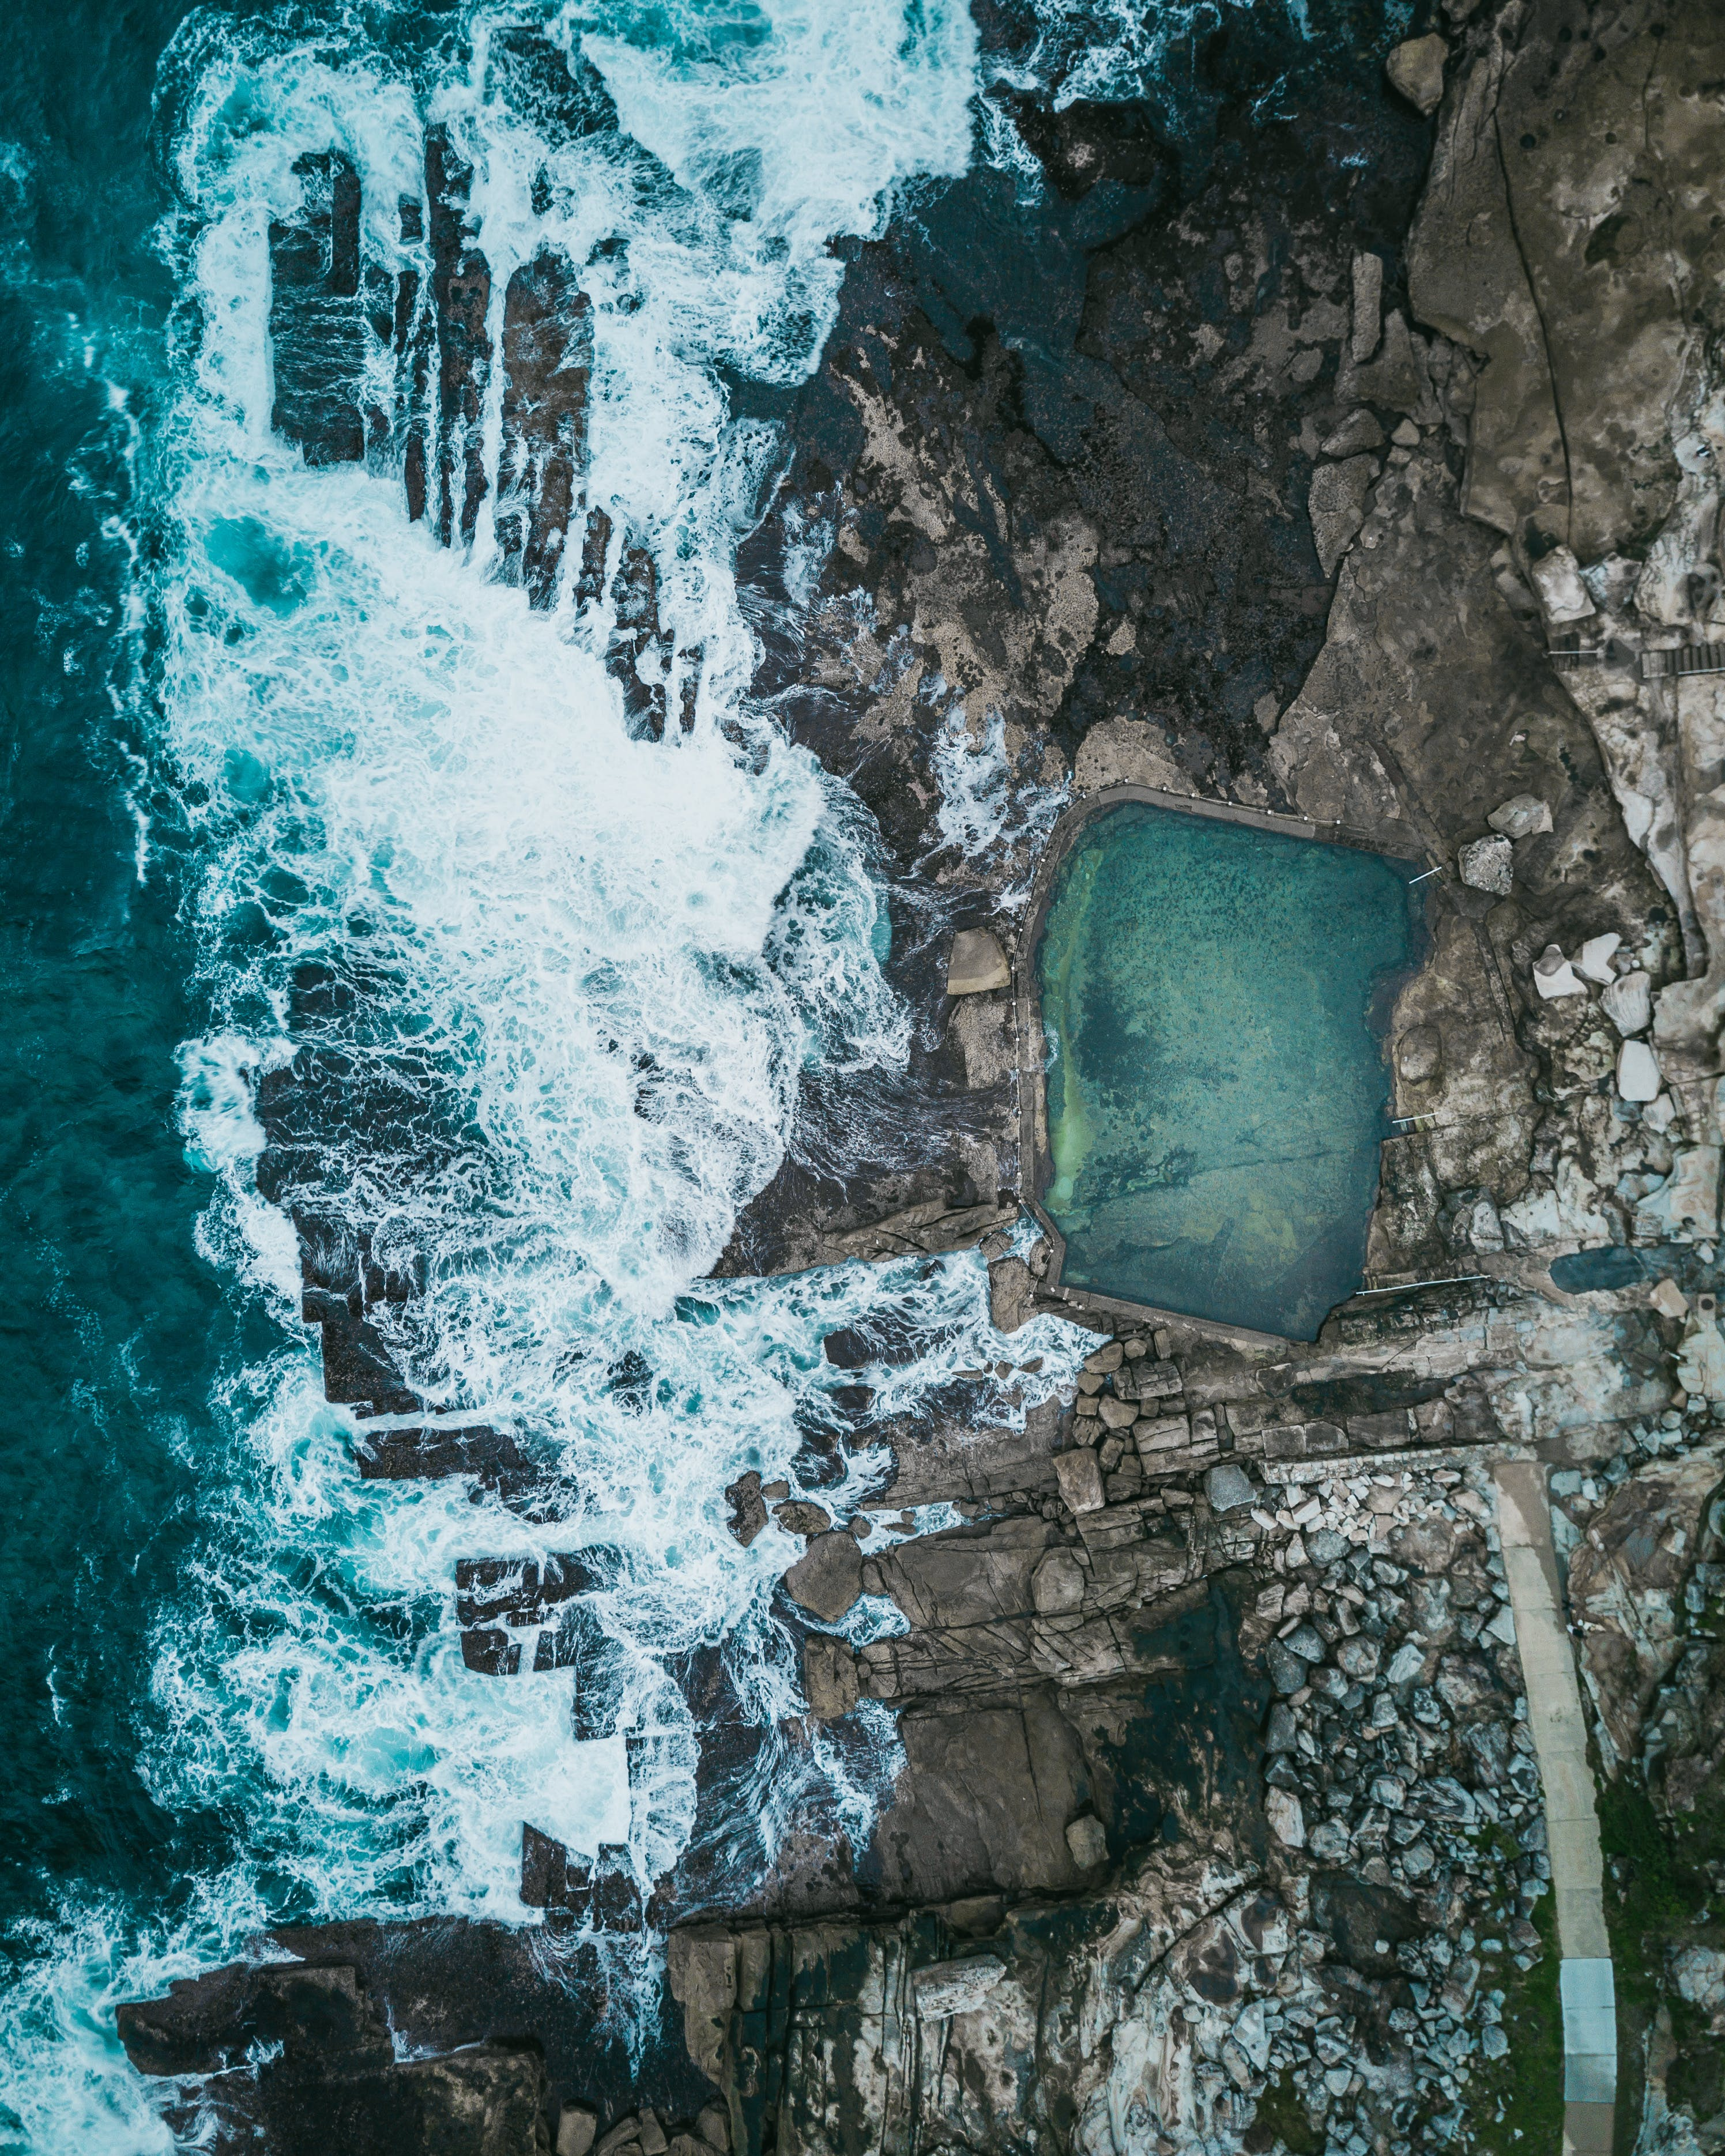 Natural Pool Beside Sea and Rock Formation Aerial Photography